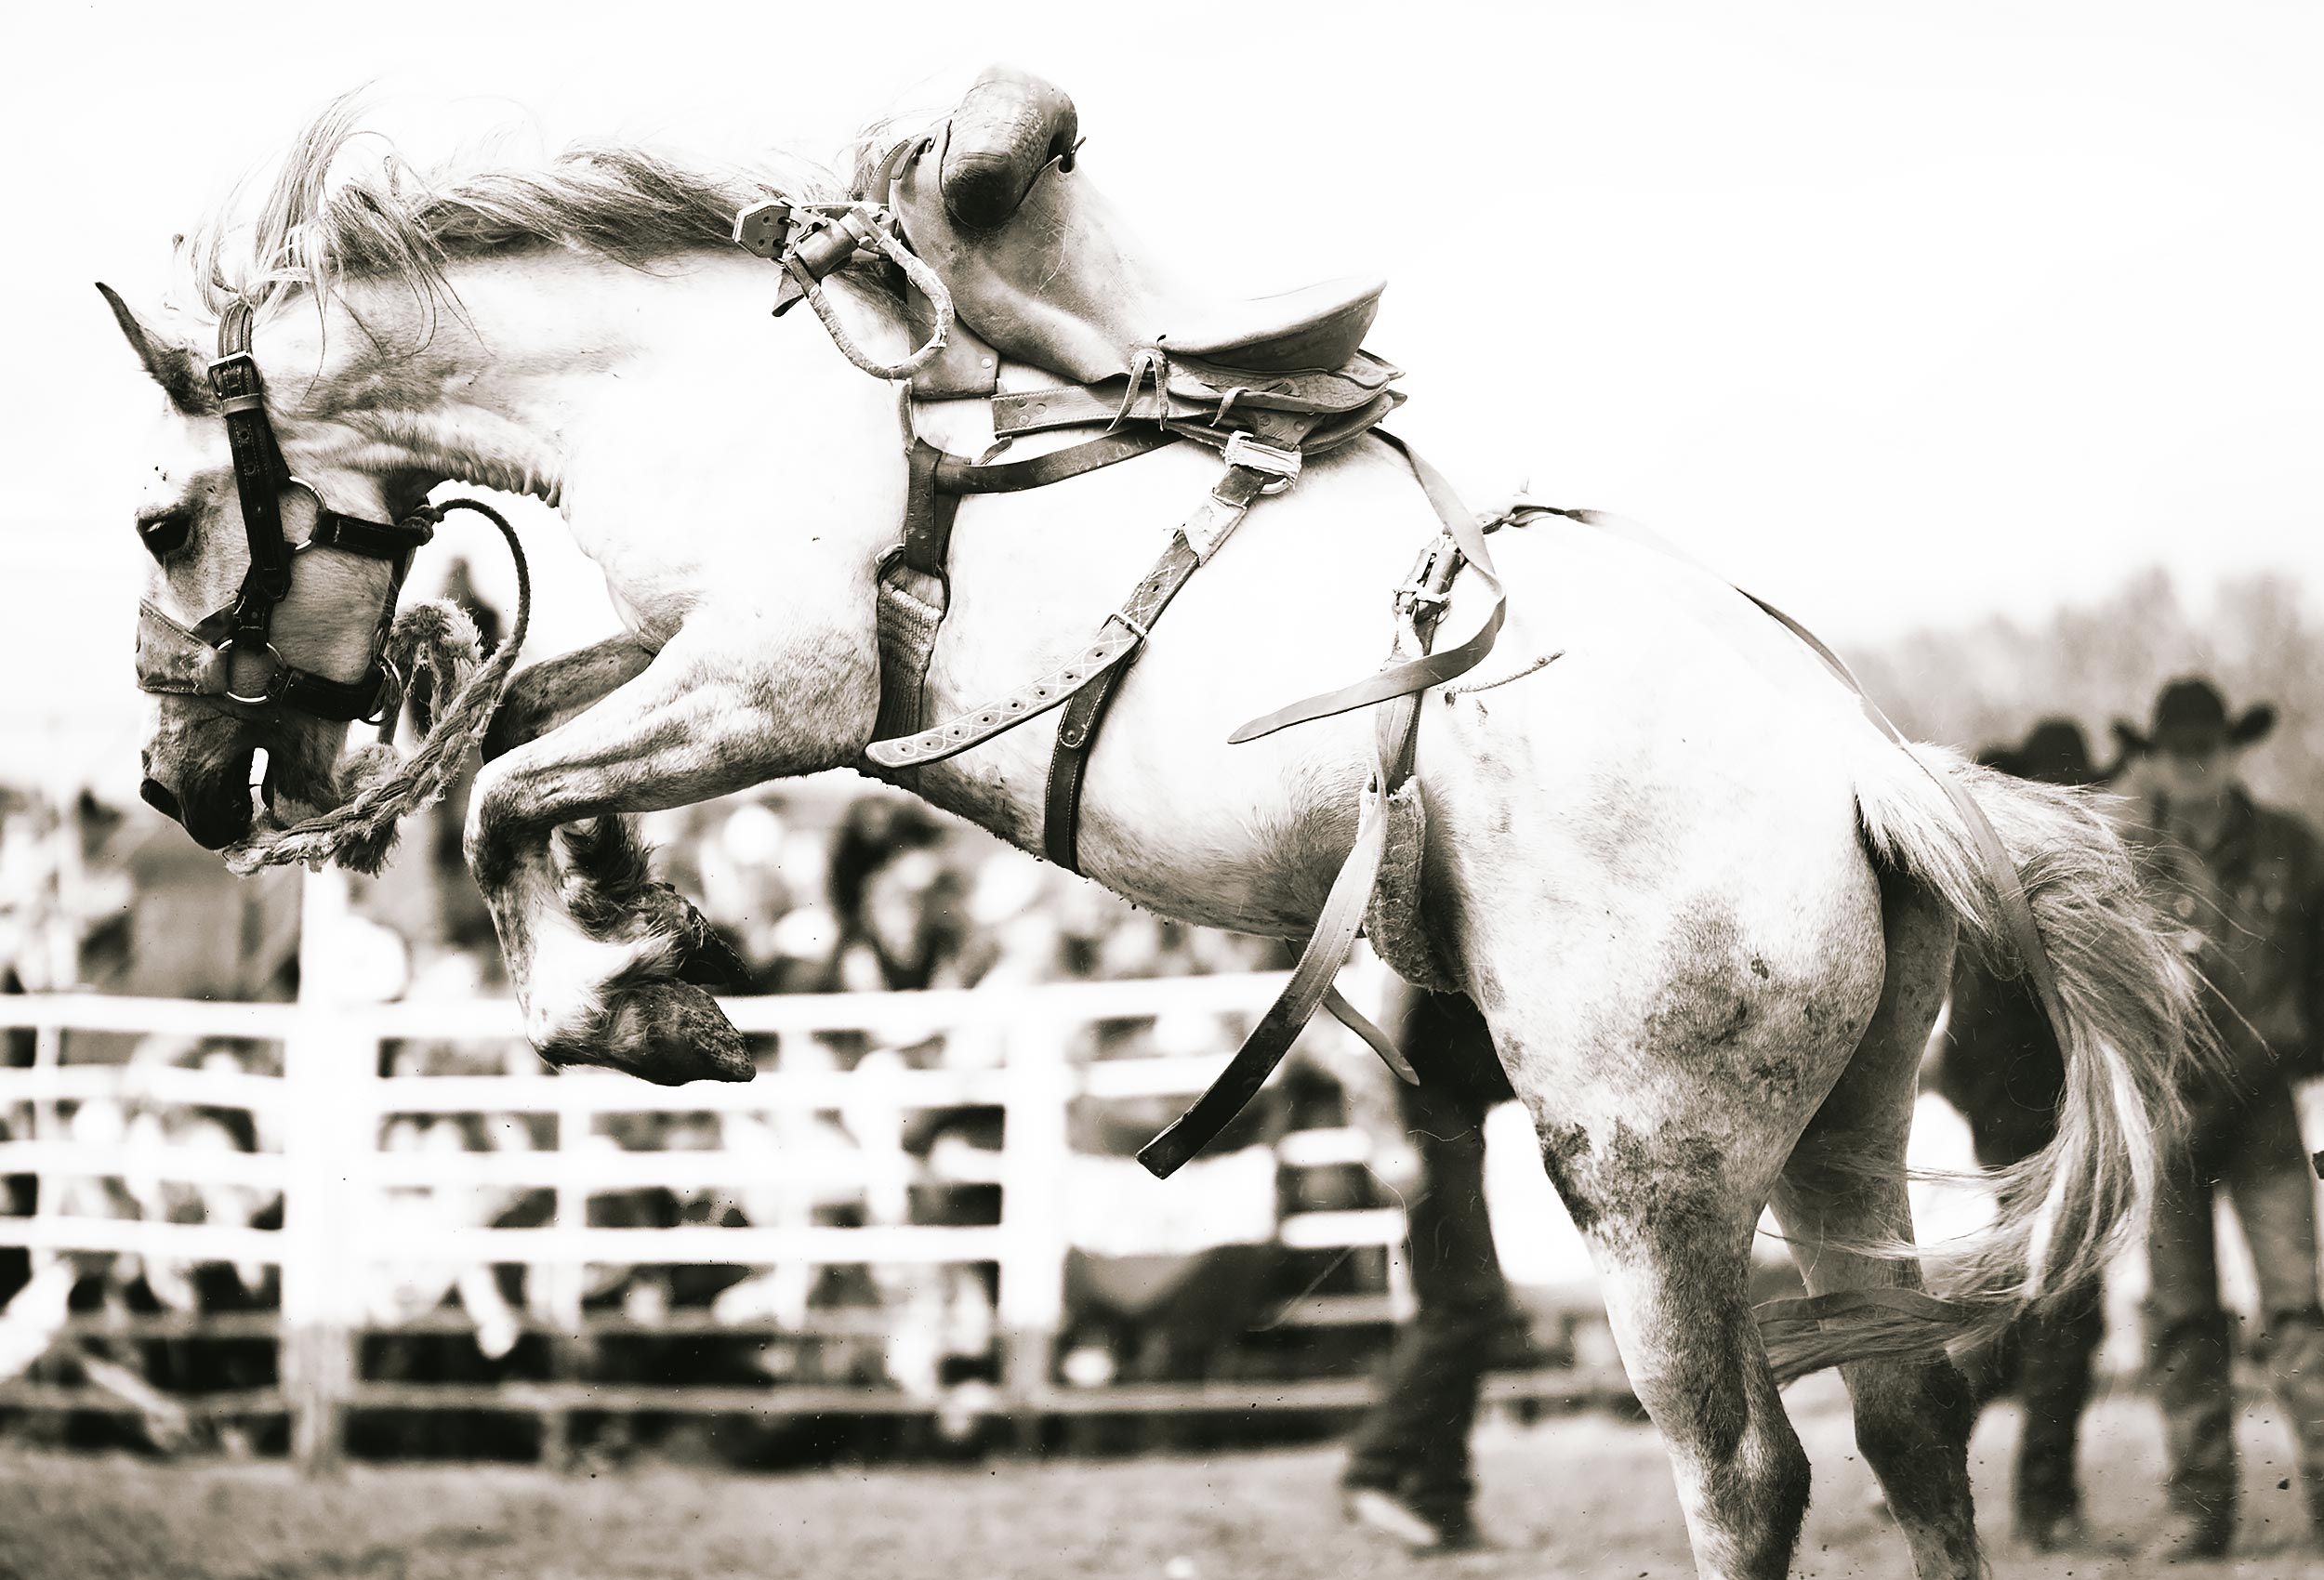 Bucking horse without a rider at a rodeo in Montana